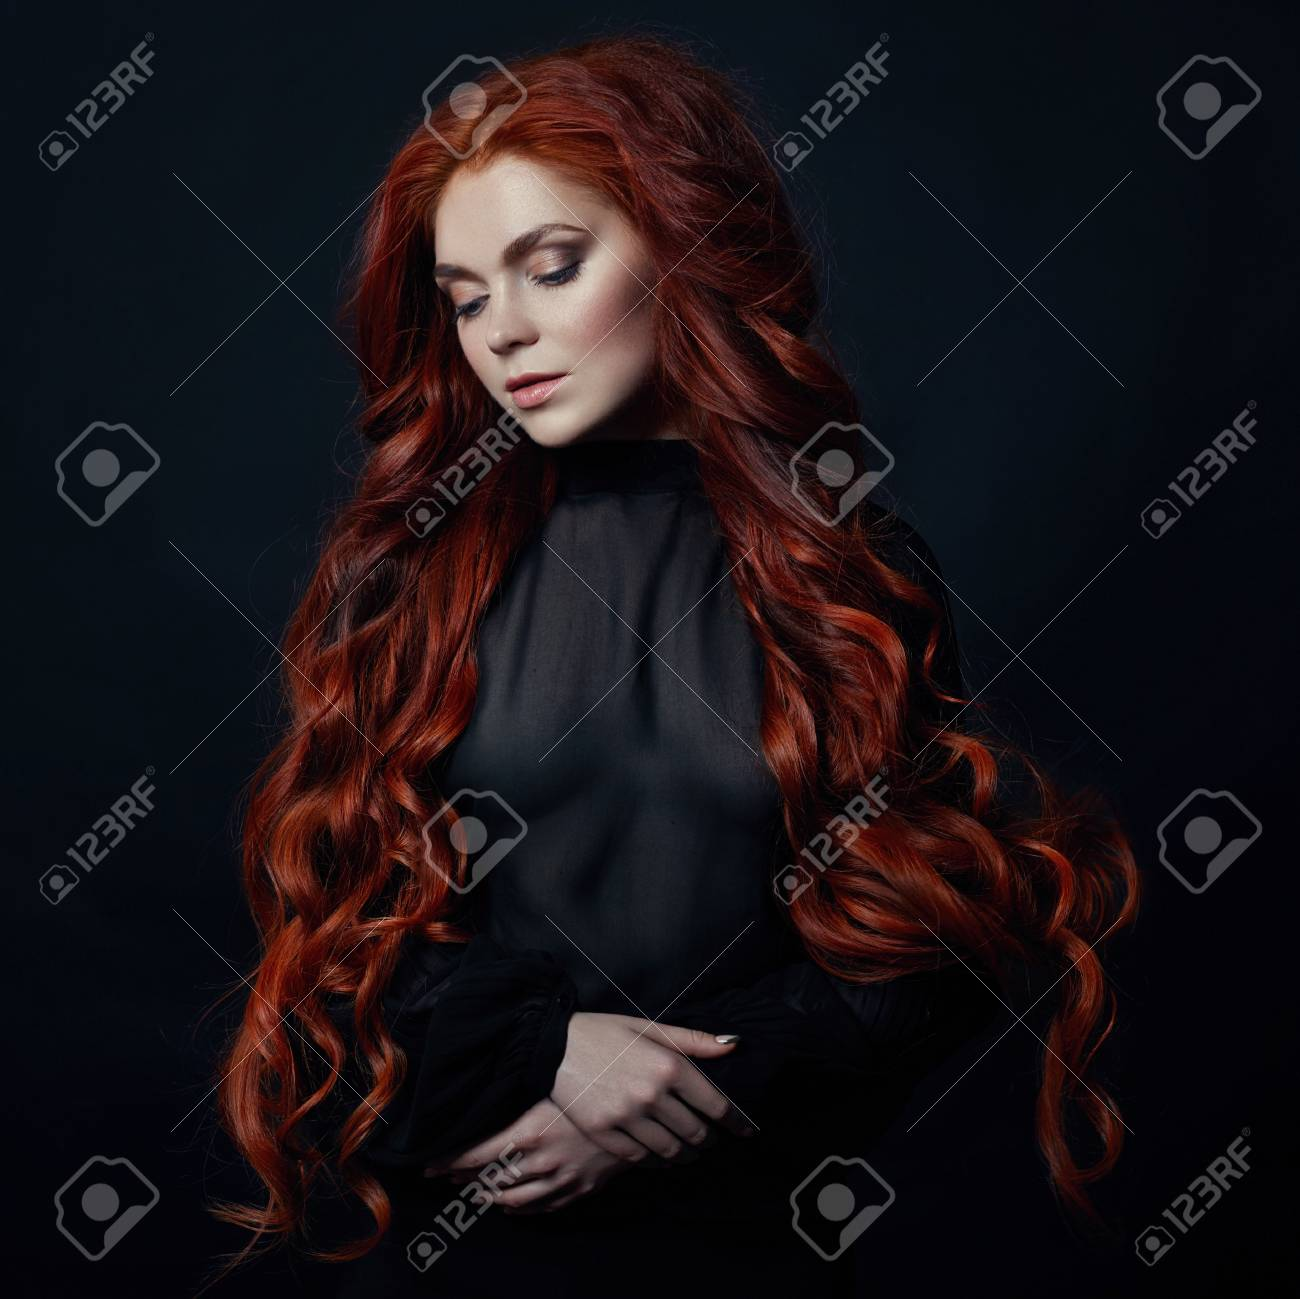 Portrait Of Redhead Sexy Woman With Long Hair On Black Background